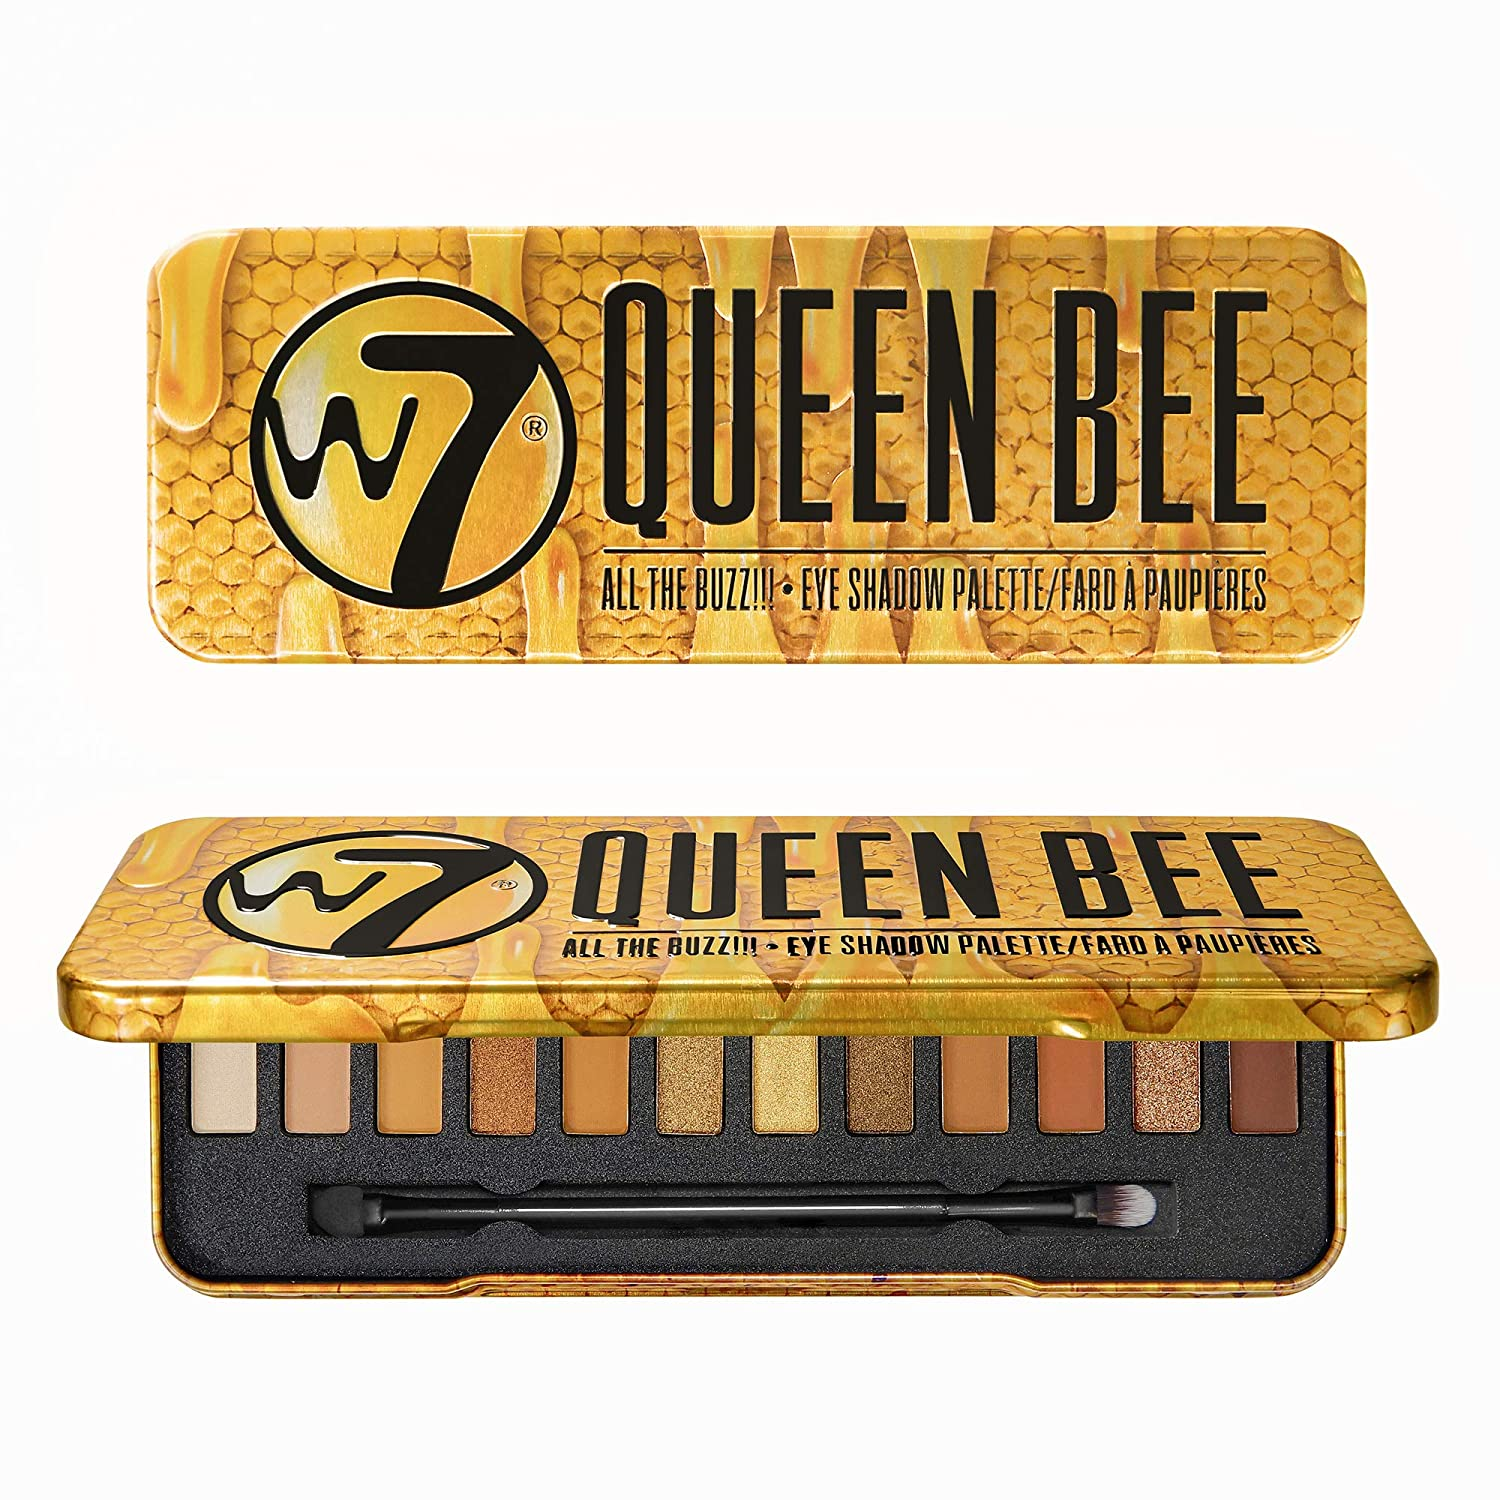 W7 | Queen Bee Eyeshadow Makeup Palette | Tones: Creamy Mattes and Shimmer Metallics | Colors: Golds, Browns, Coppers, Nudes | Cruelty Free Eye Makeup For Women by W7 Cosmetics